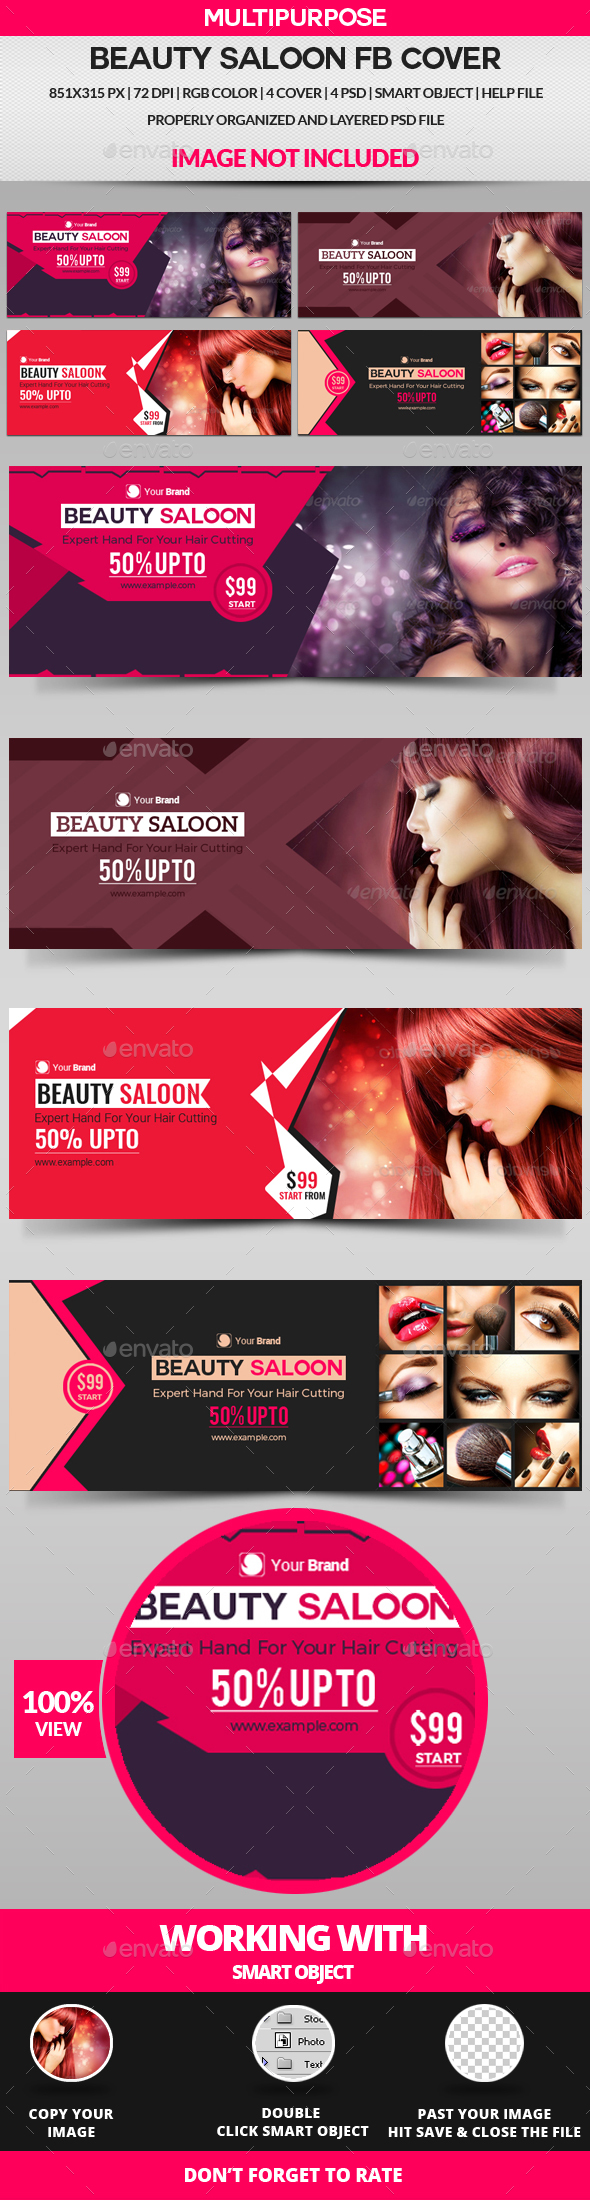 Beauty Saloon Facebook Cover - 4 Design - Facebook Timeline Covers Social Media